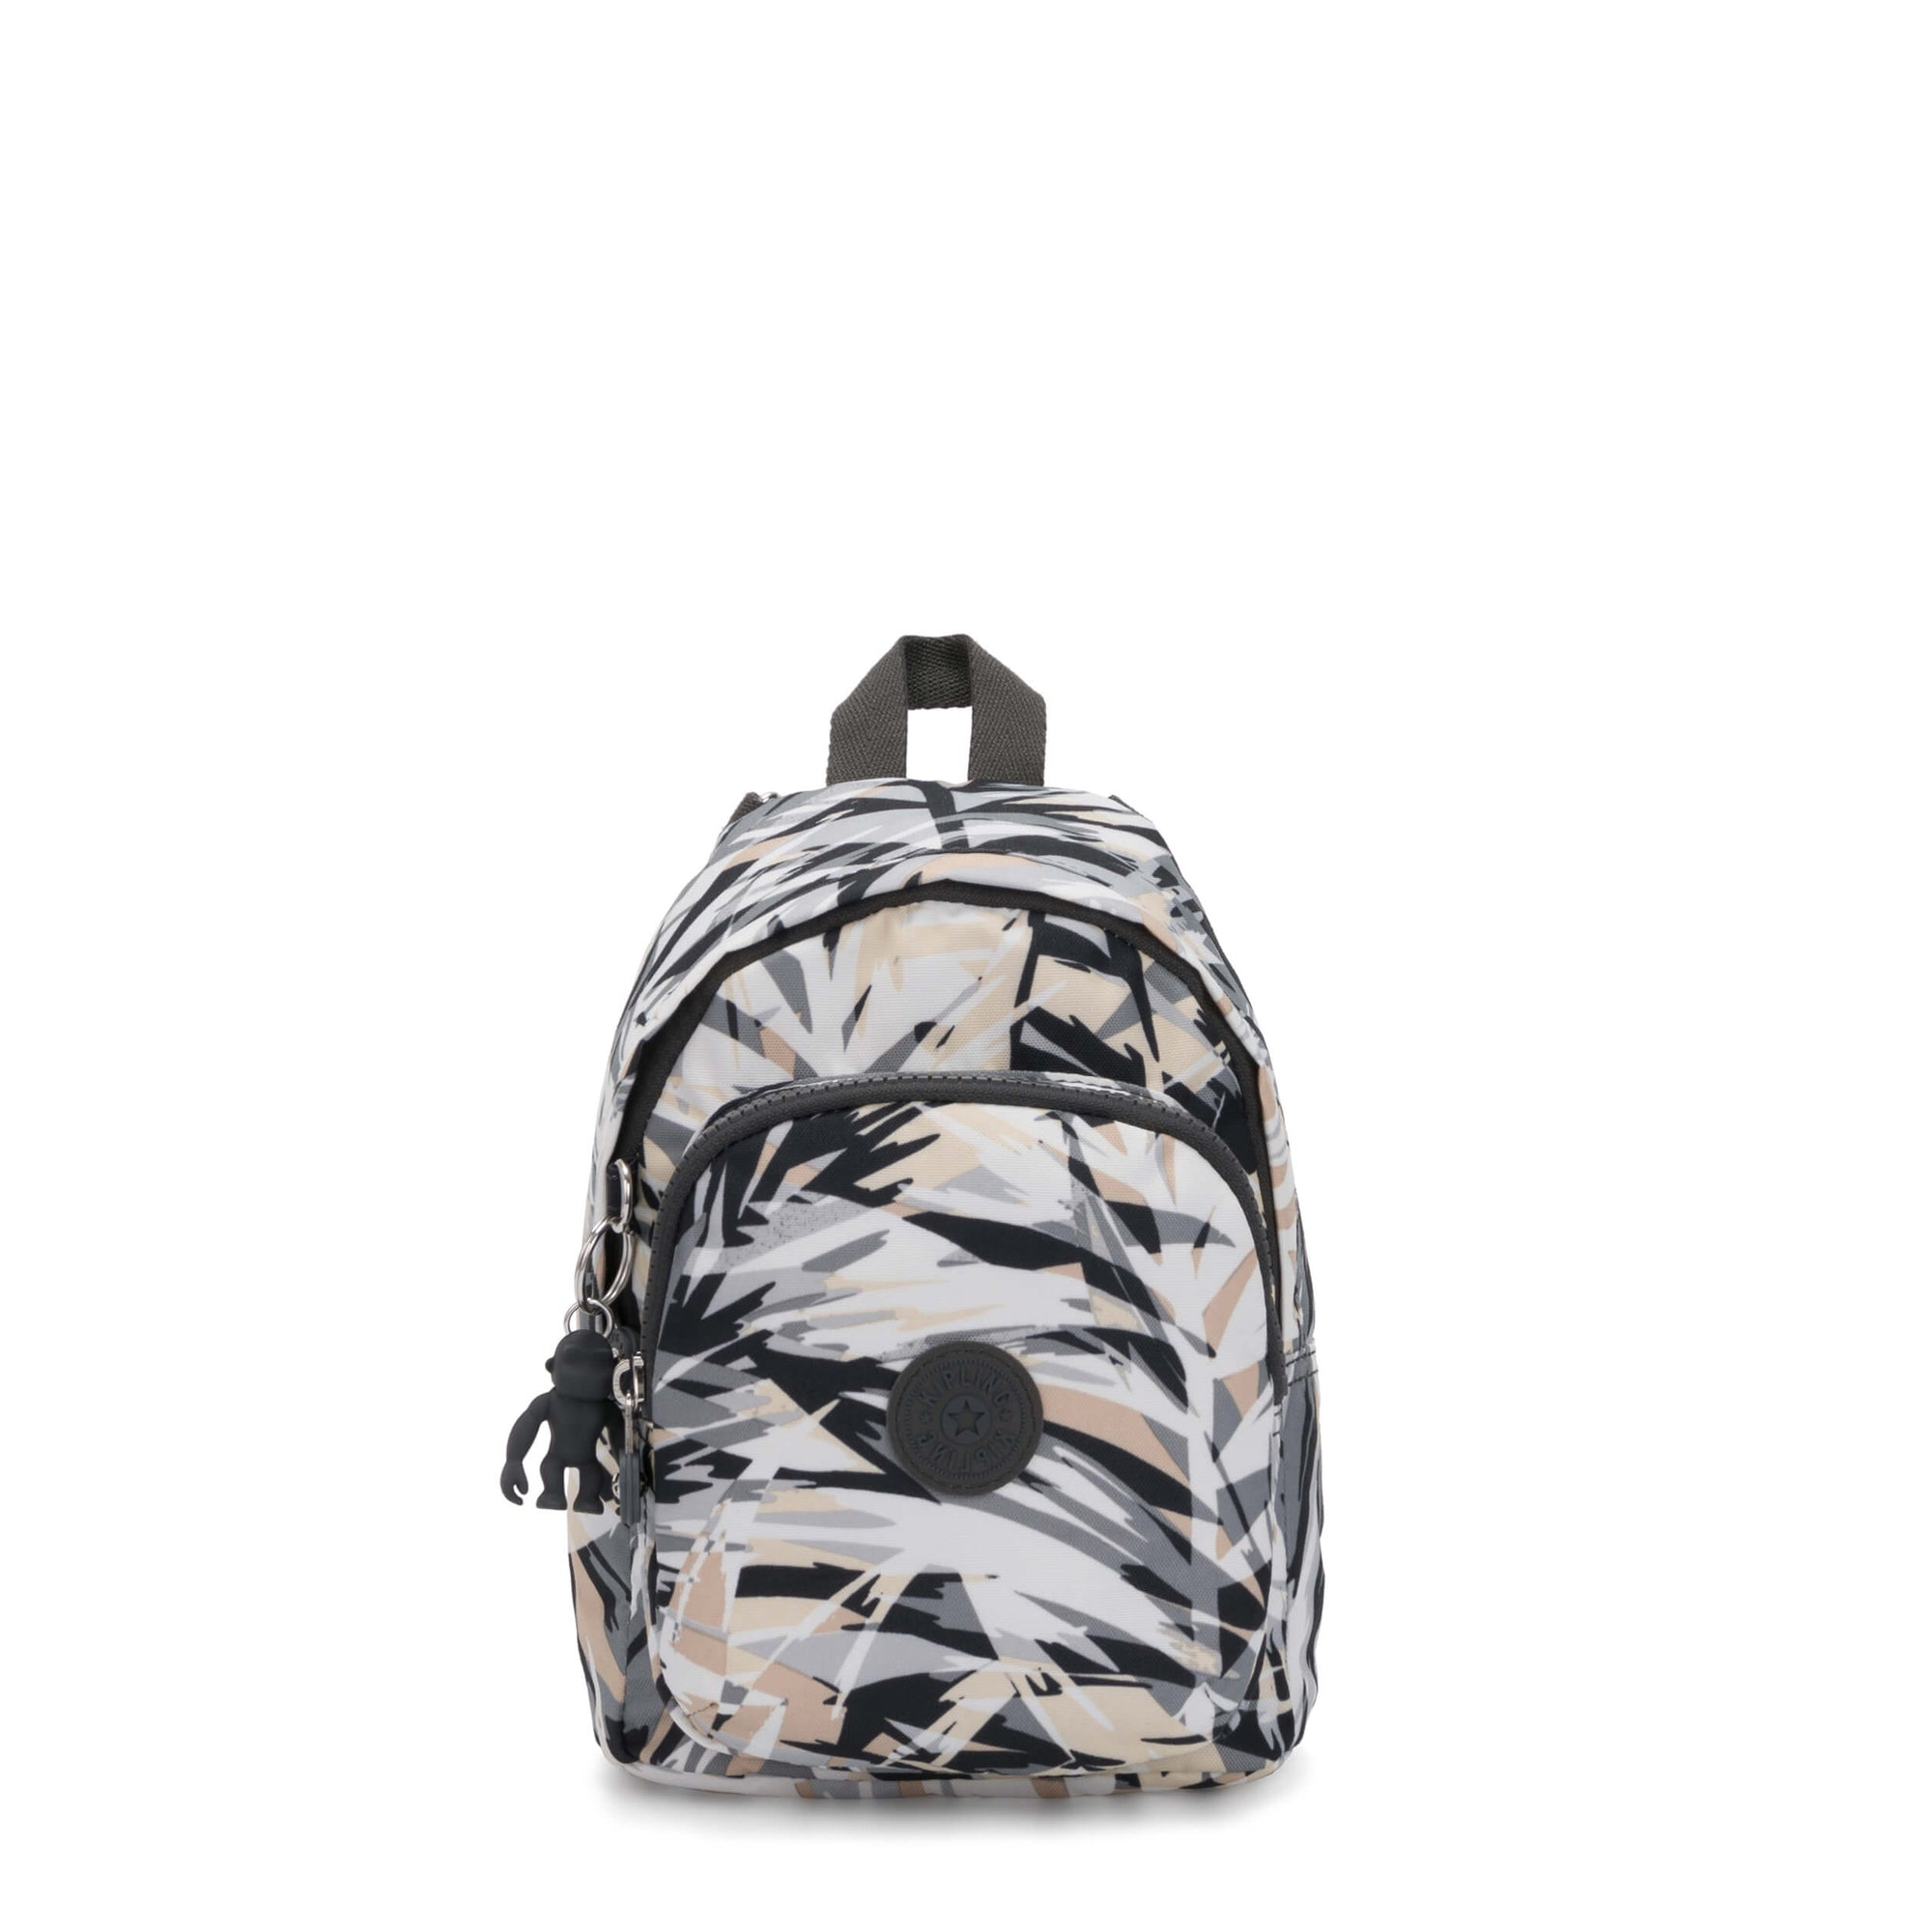 Backpack Kipling Delia Compact Urban Palm KI566149O